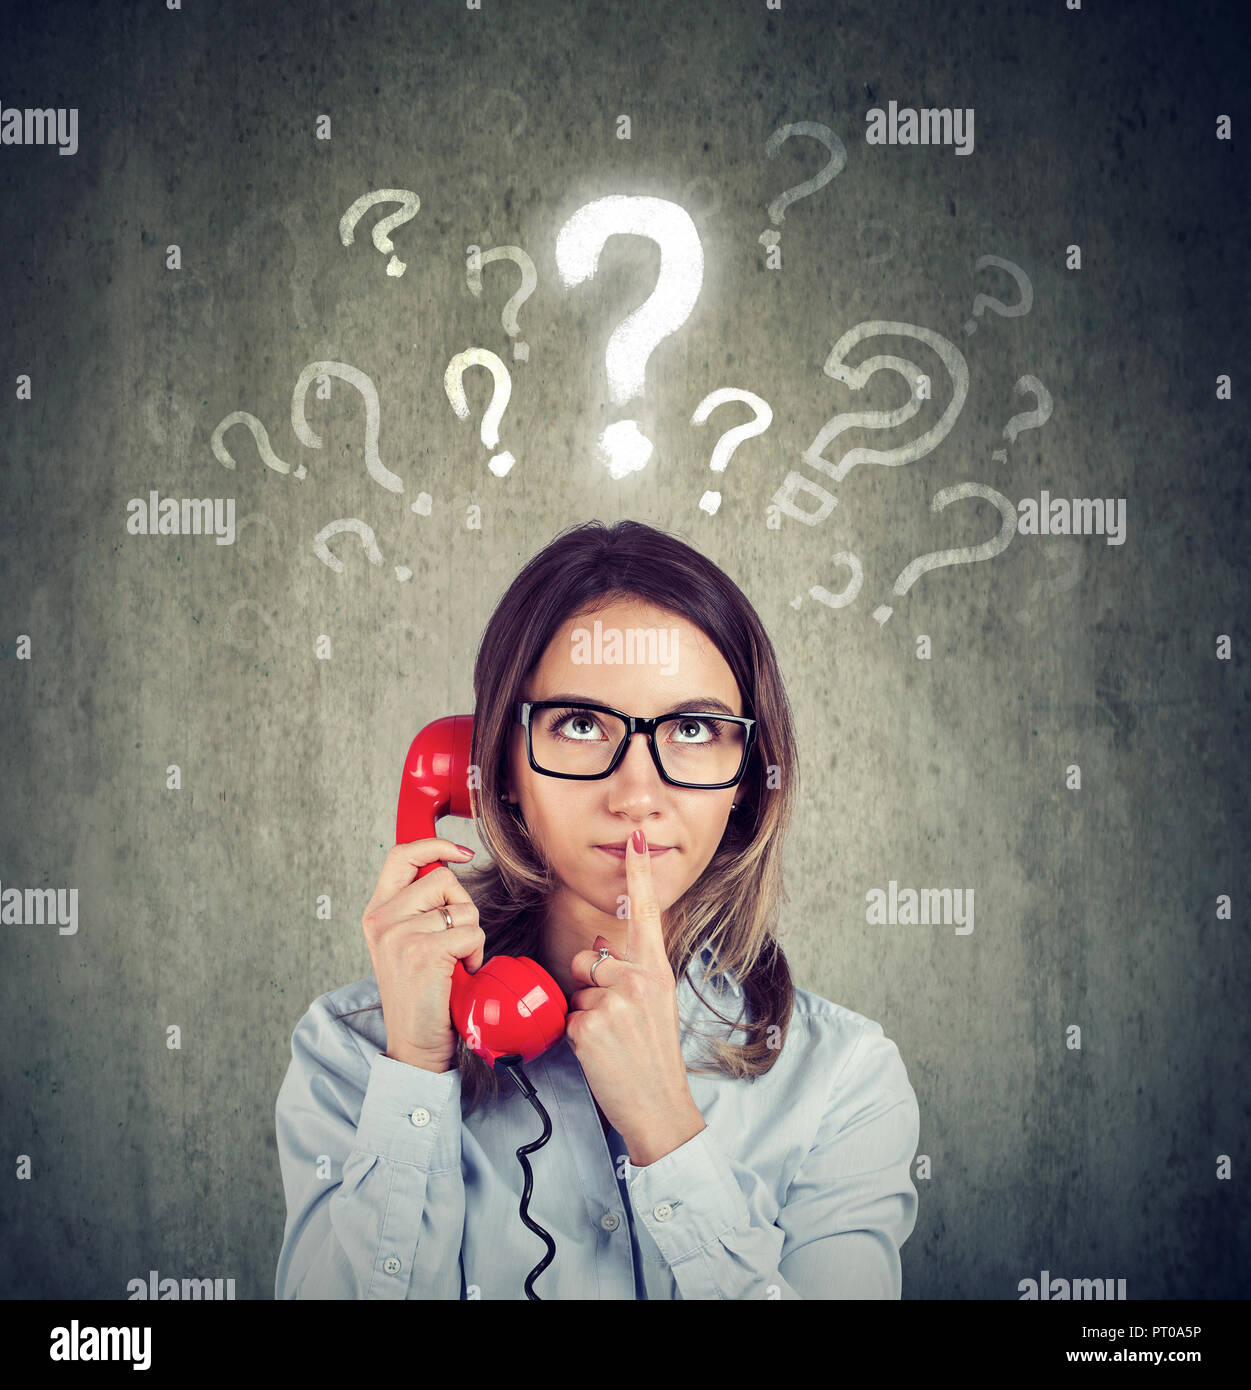 Misunderstanding and distant call. Confused worried woman talking on a phone has many questions isolated on gray background. - Stock Image